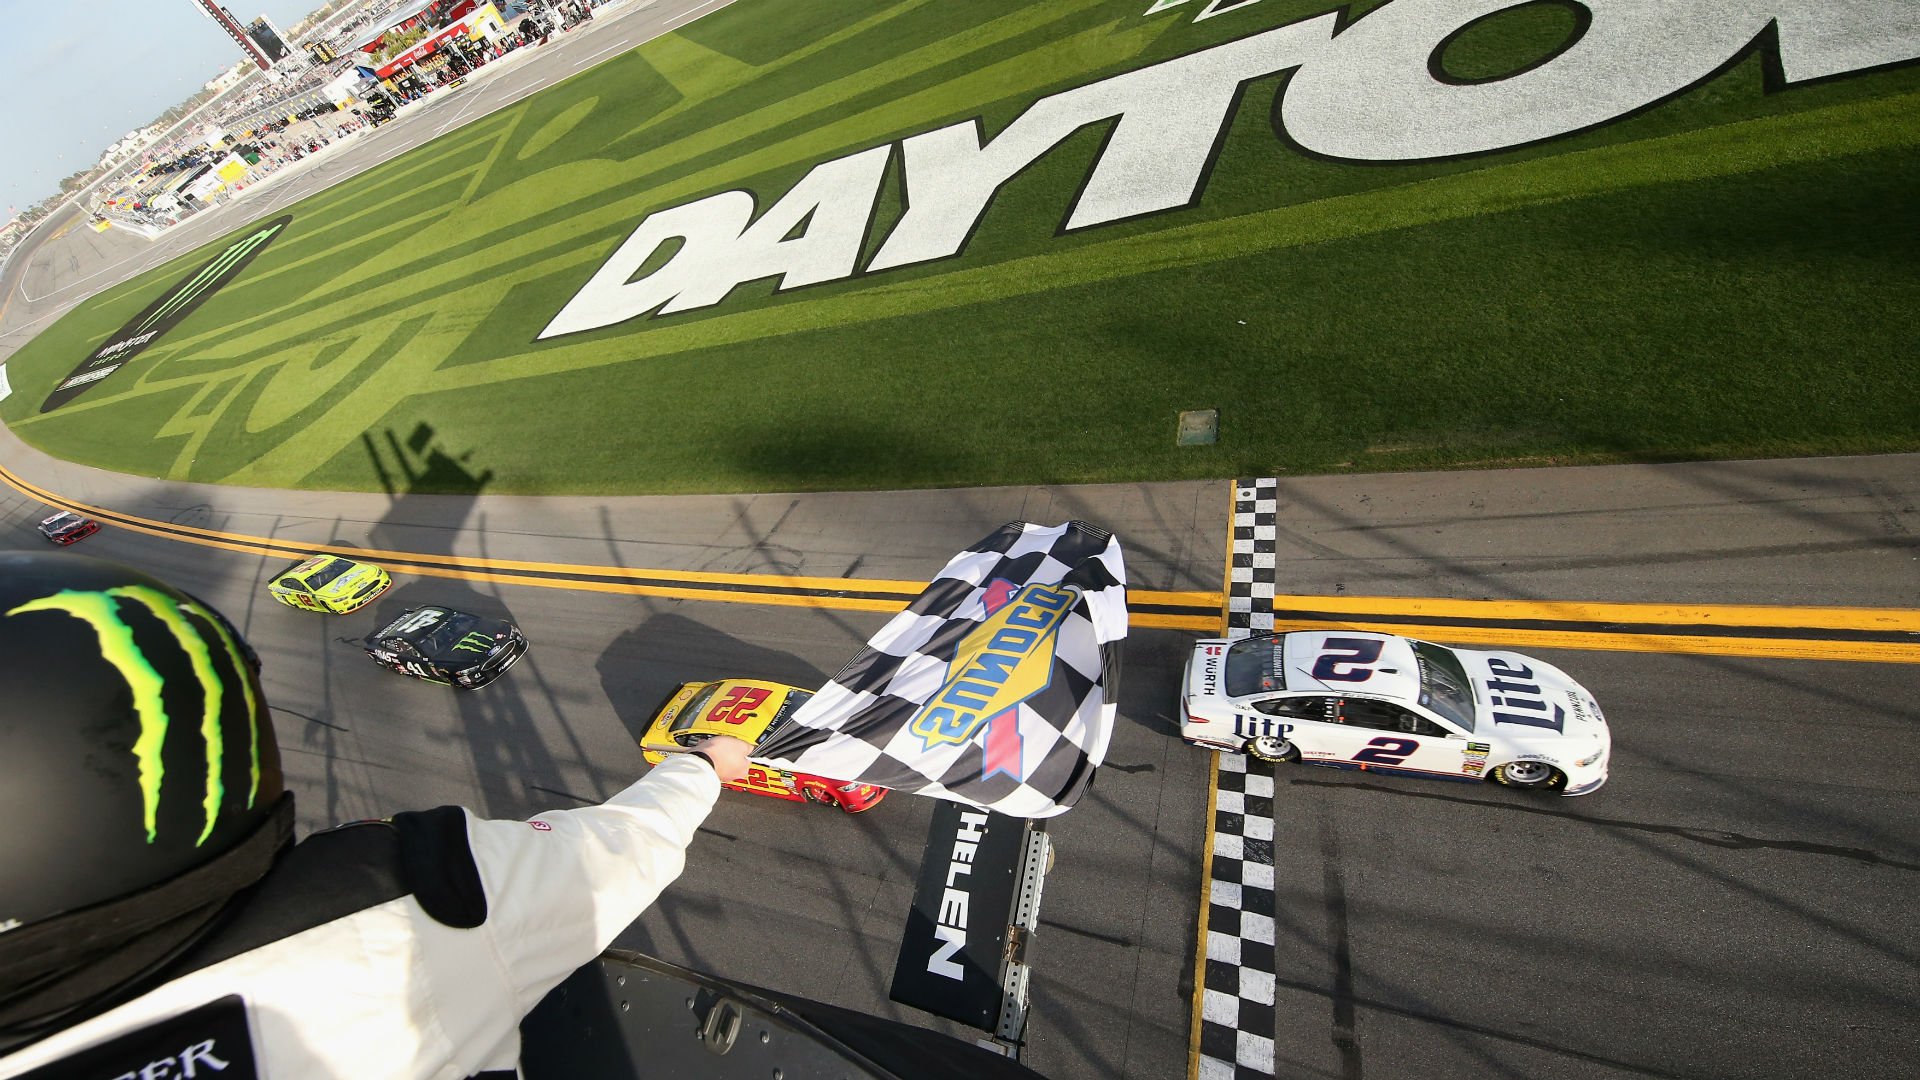 Drivers slow down for Daytona 500 Media Day